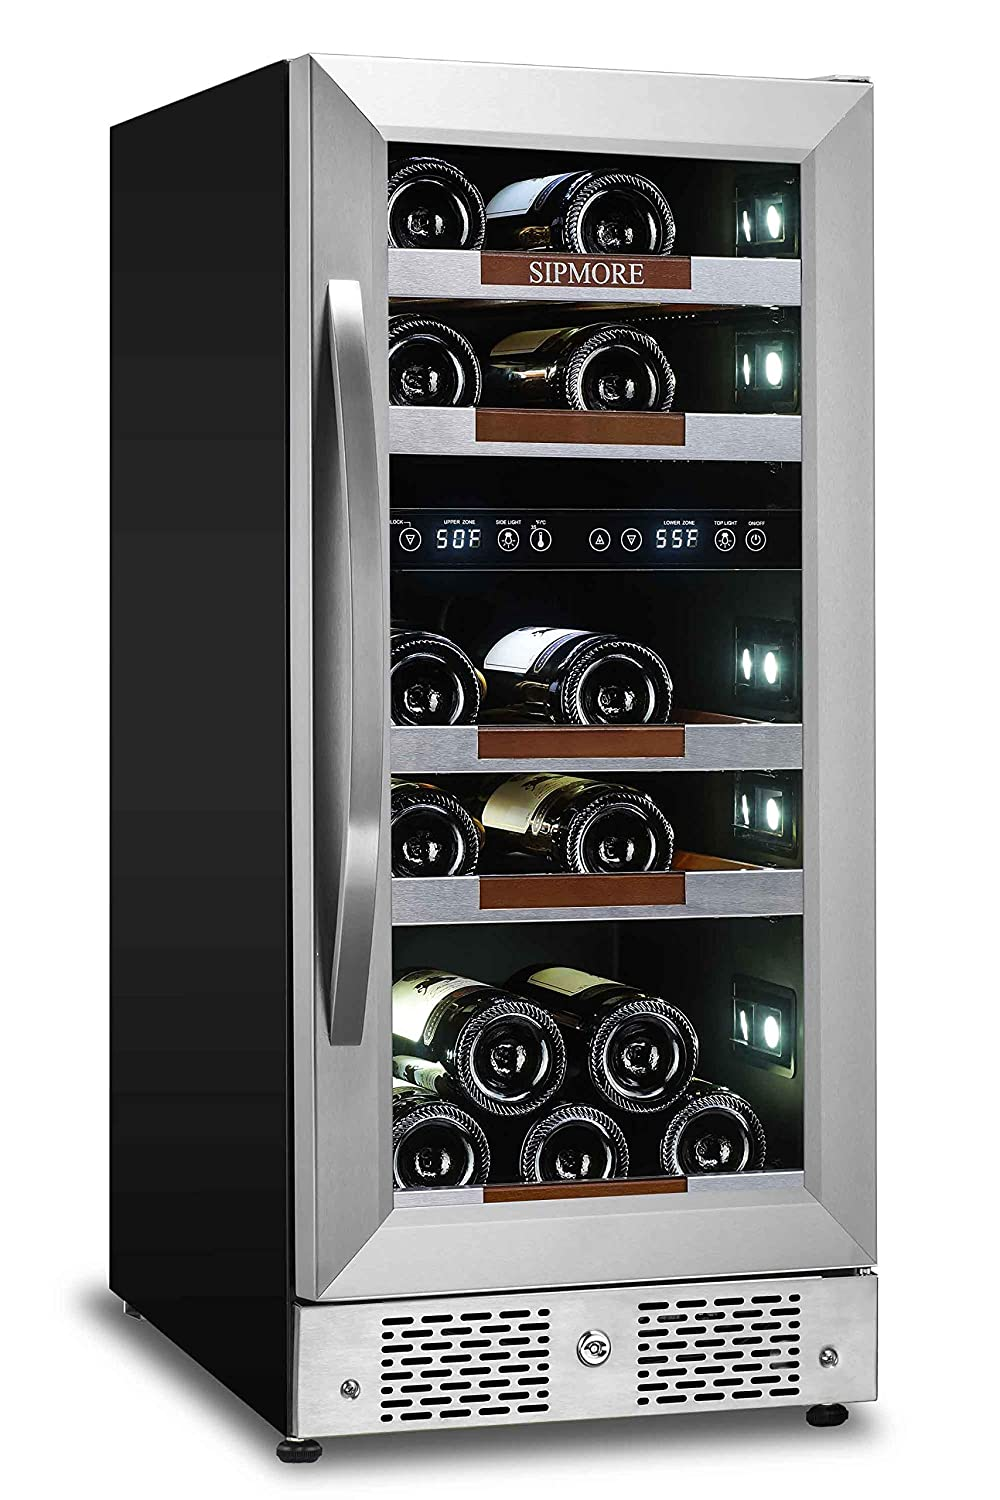 Sipmore Wine Cooler Refrigerator 15 Dual Zone 21 Multi Sized Bottle Built-in or Freestanding with Seamless Stainless Steel and Smart Temperature Memory System with Stage LED Design